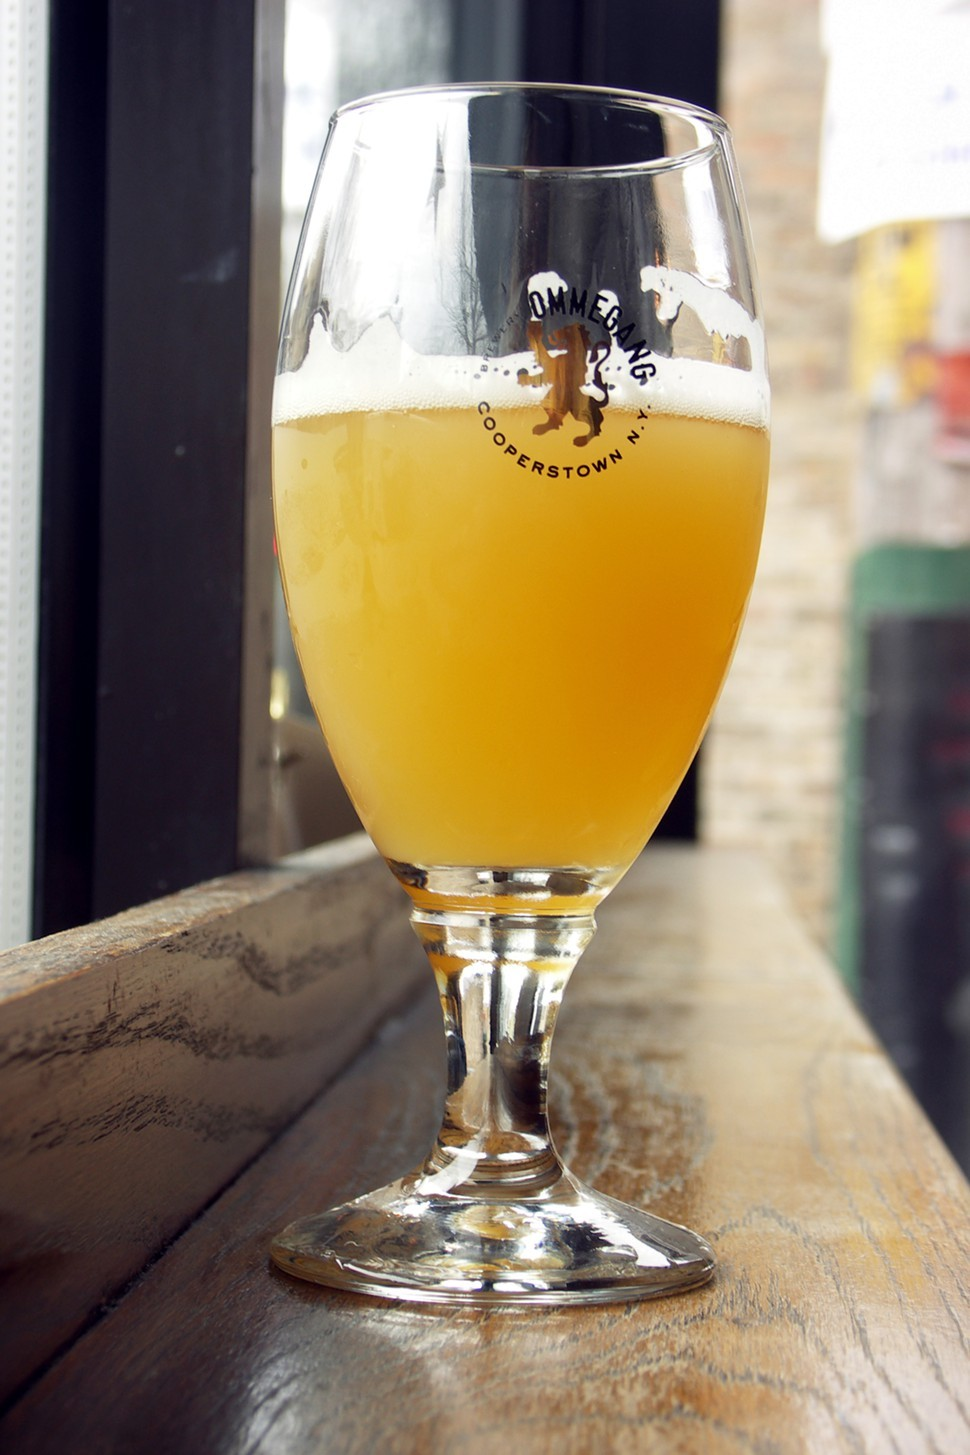 Tonnerre Neige (Thunder Snow, sort of), Off Colors collaboration with Three Floyds